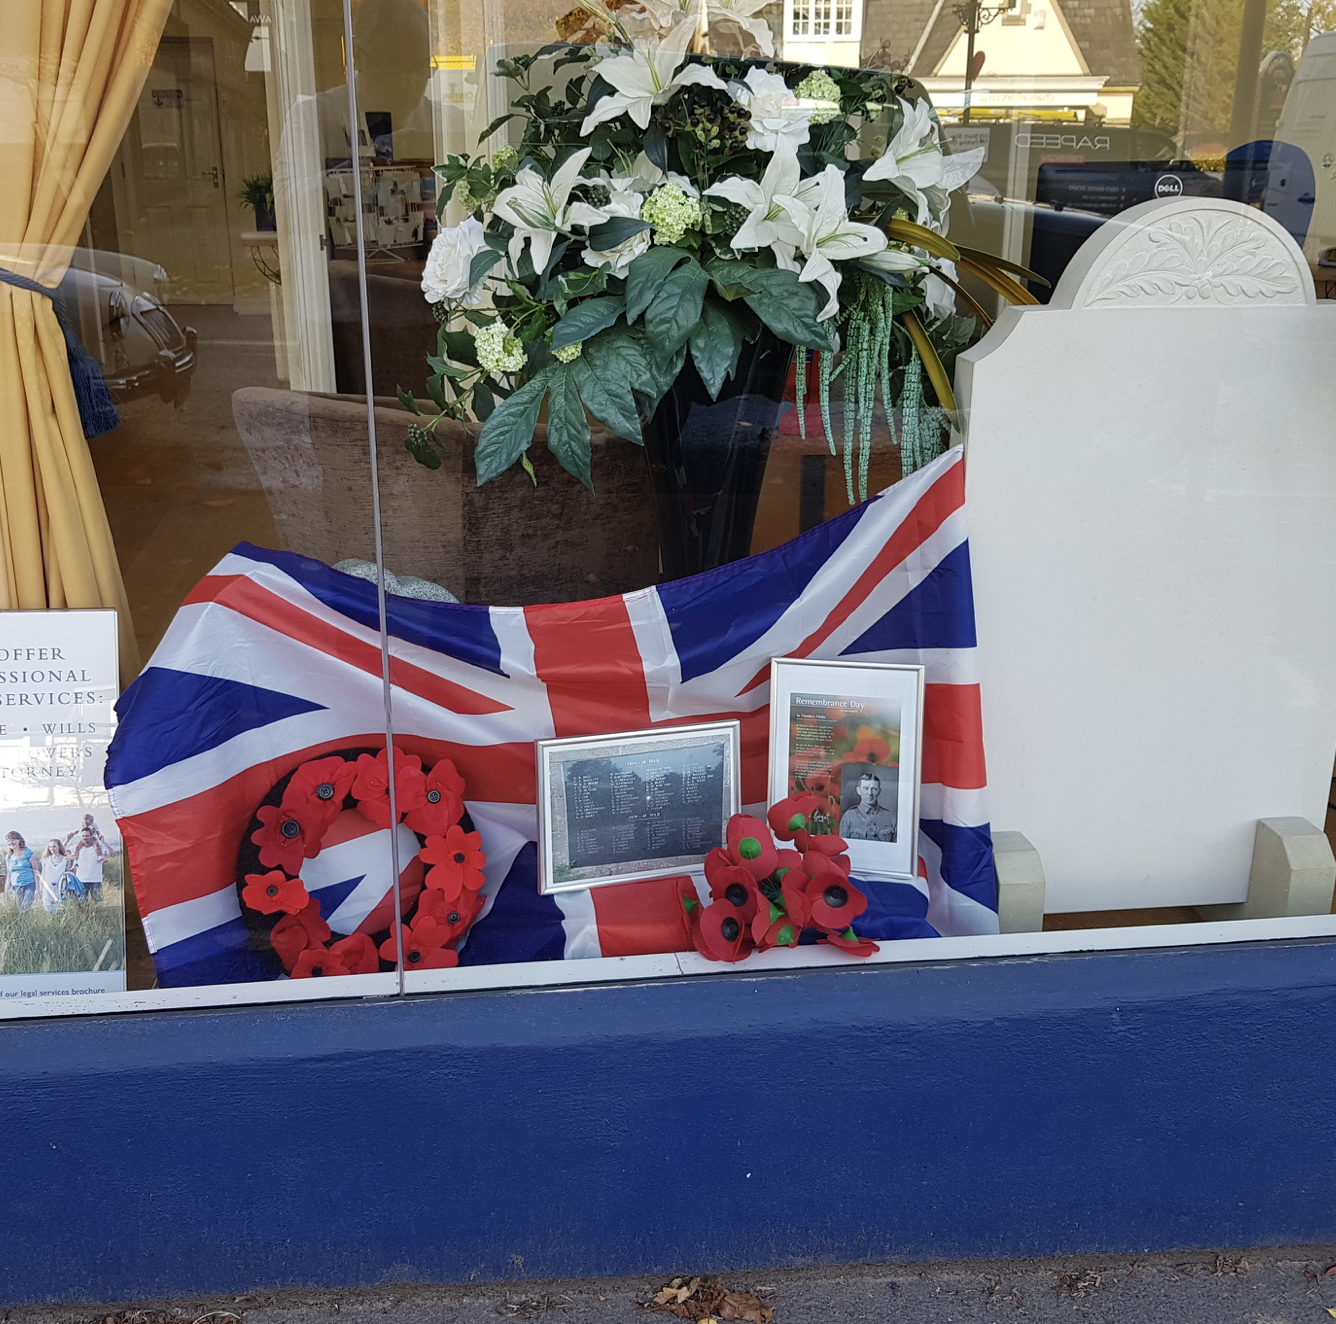 "Lodge Brothers, Sunningdale says: ""Lest We Forget"""